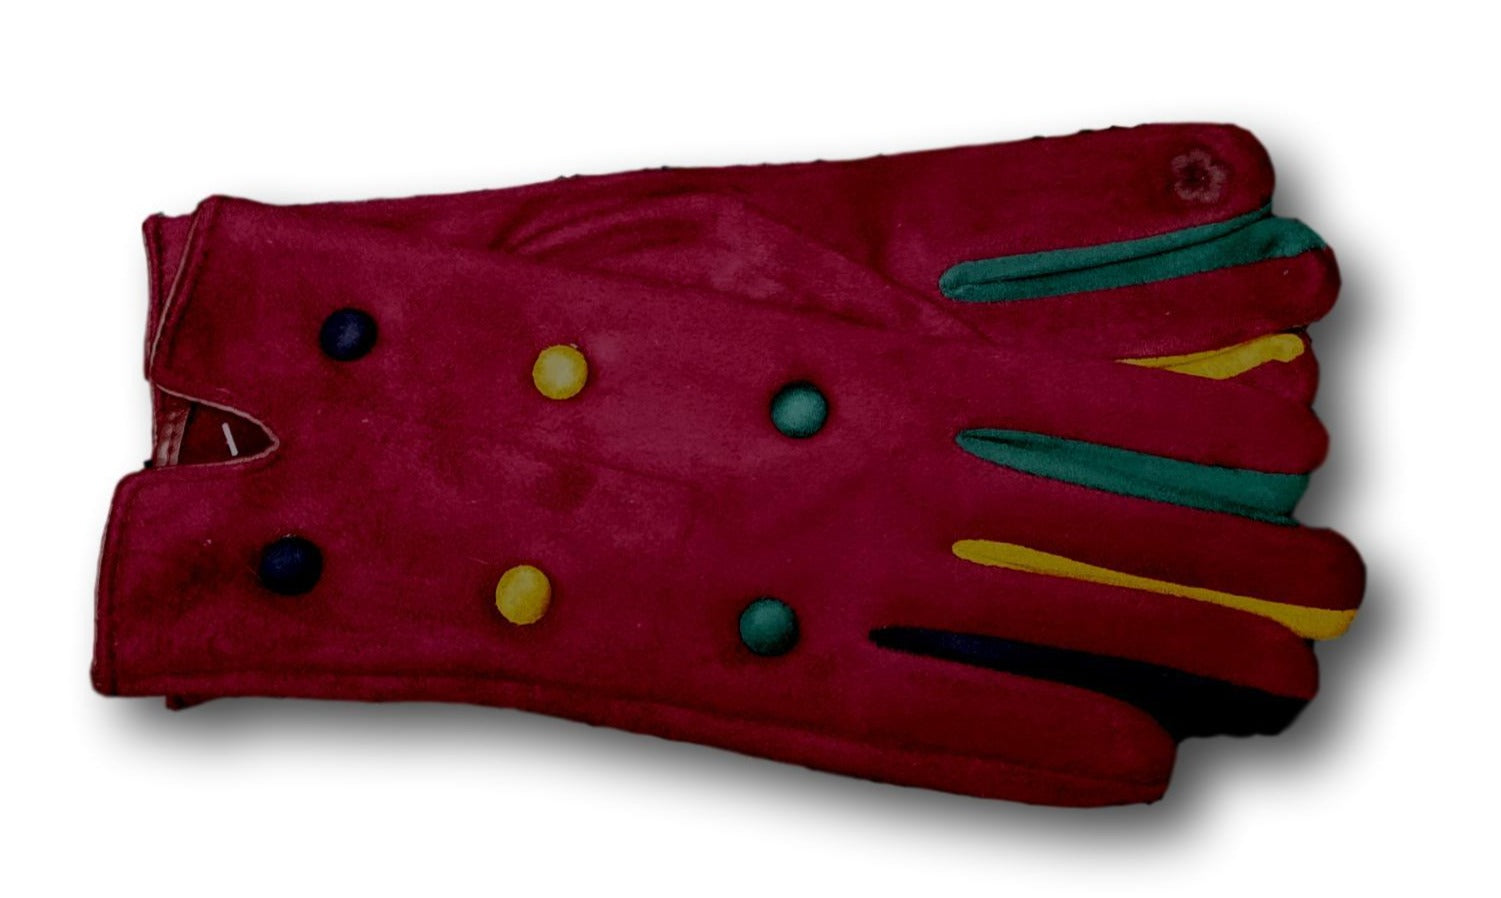 GL010 Red Coloured finger glove with buttons